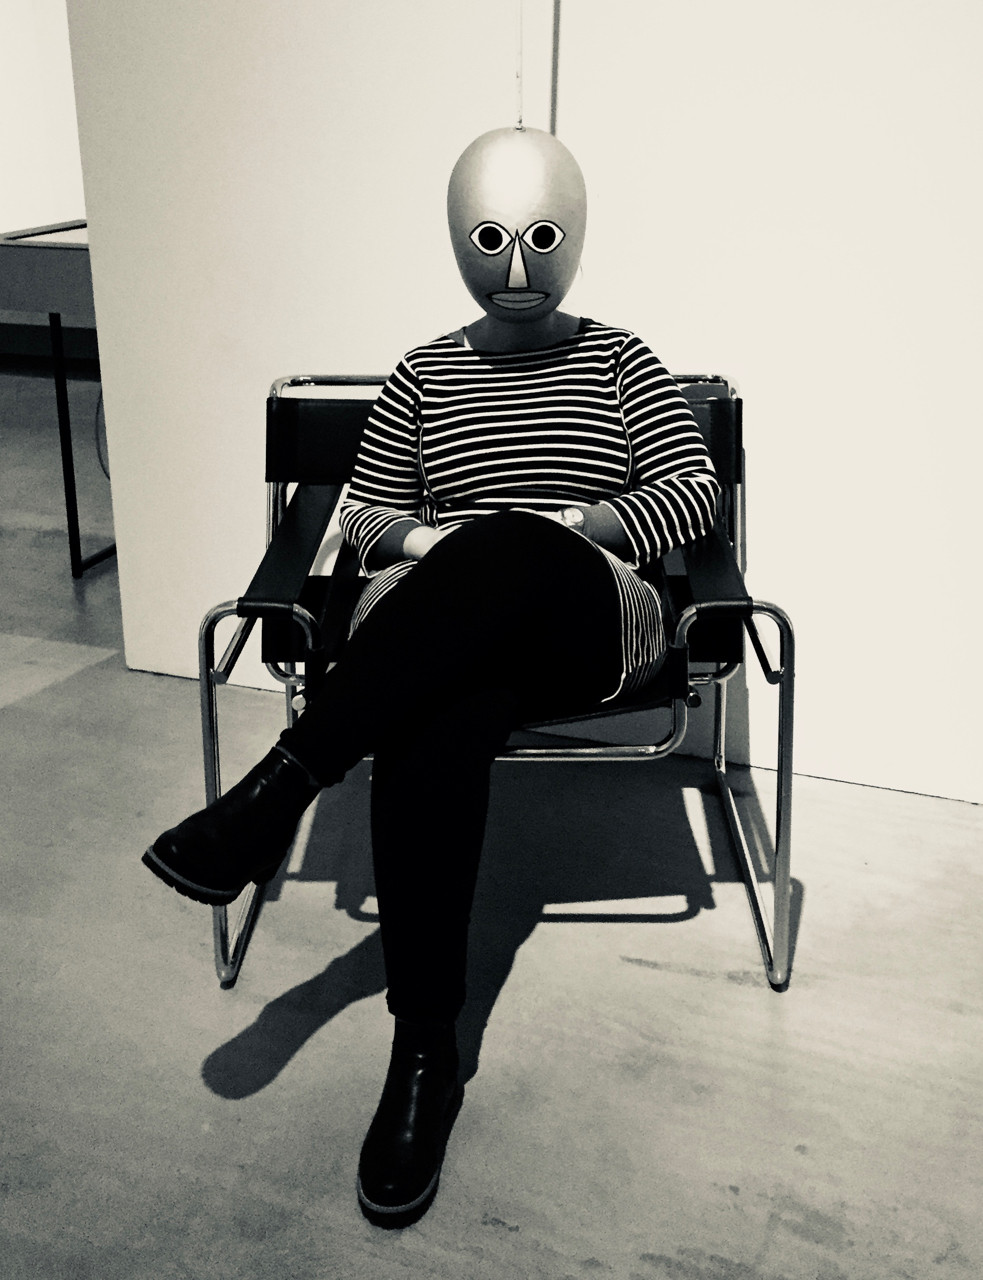 Masked woman sitting in a modernist chair.